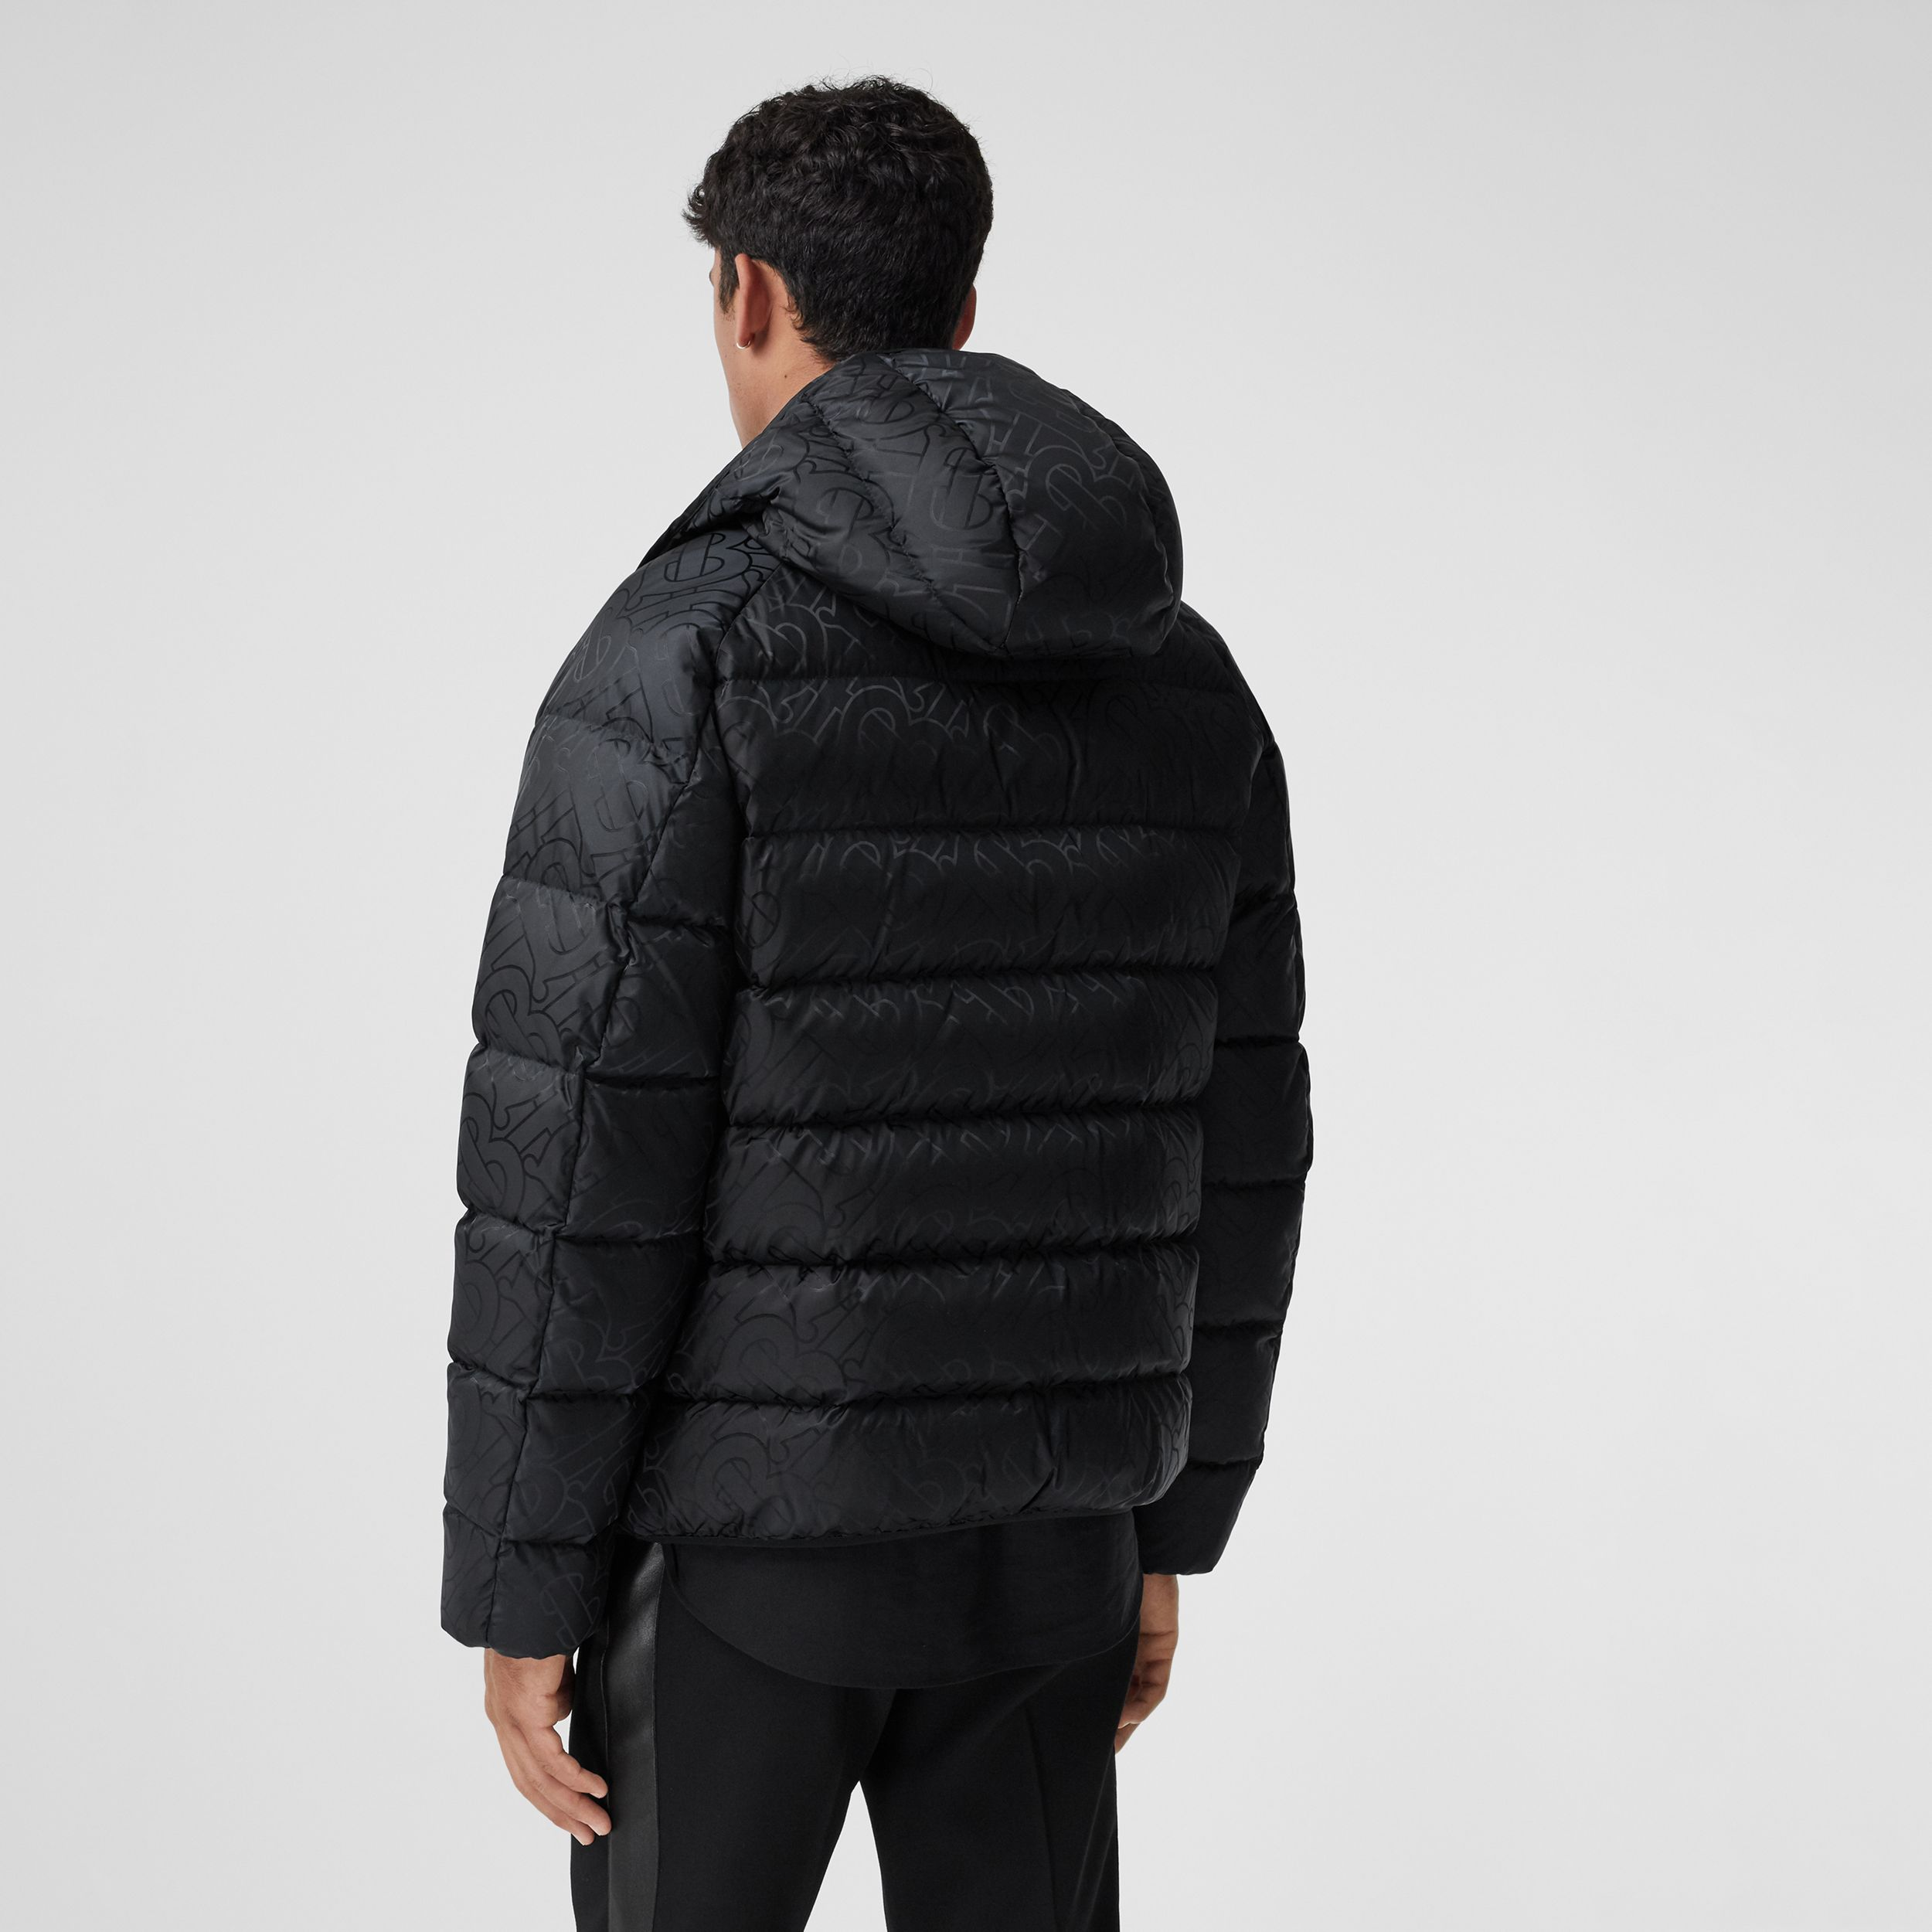 Monogram Jacquard Hooded Puffer Jacket in Black - Men | Burberry Canada - 3